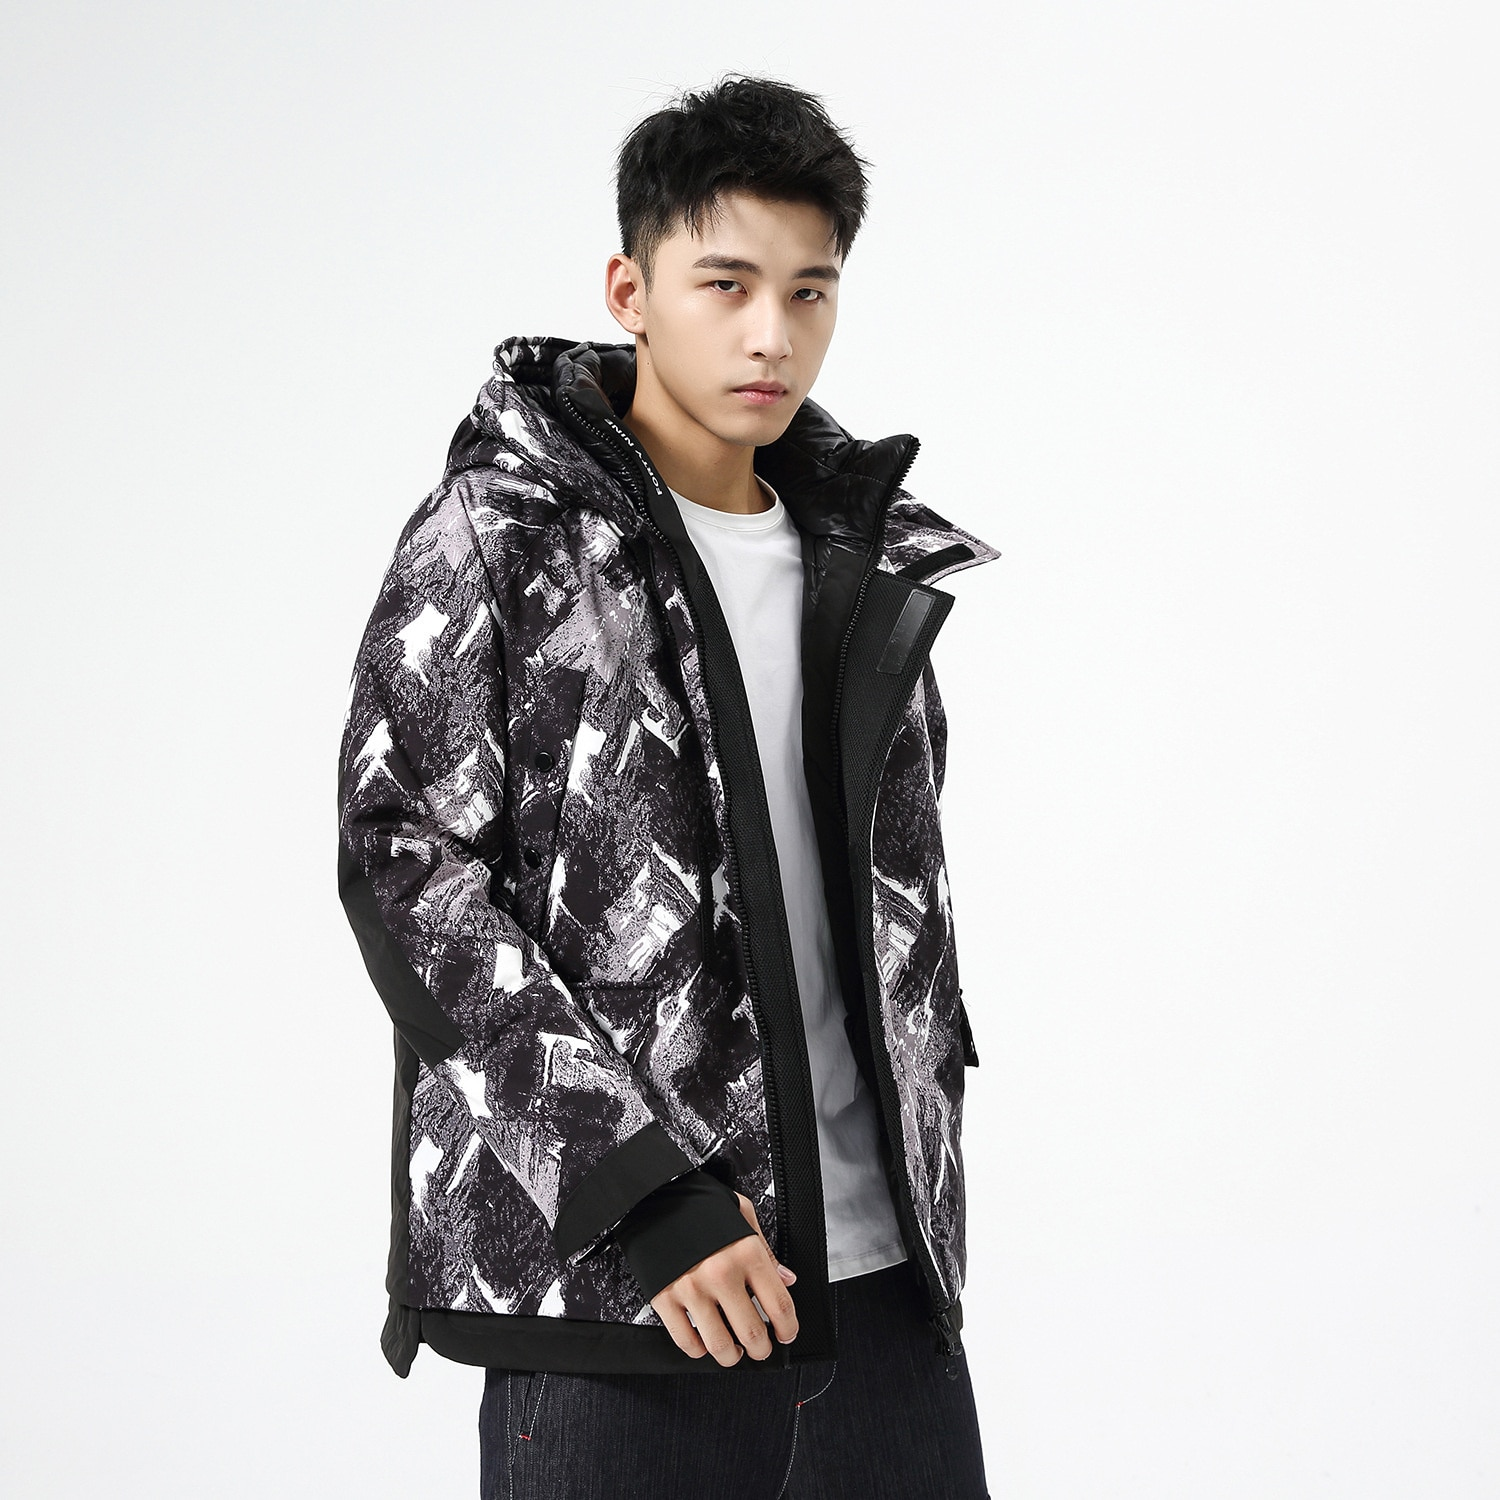 Down jacket men's winter short camouflage thickened hooded young leisure trend coat